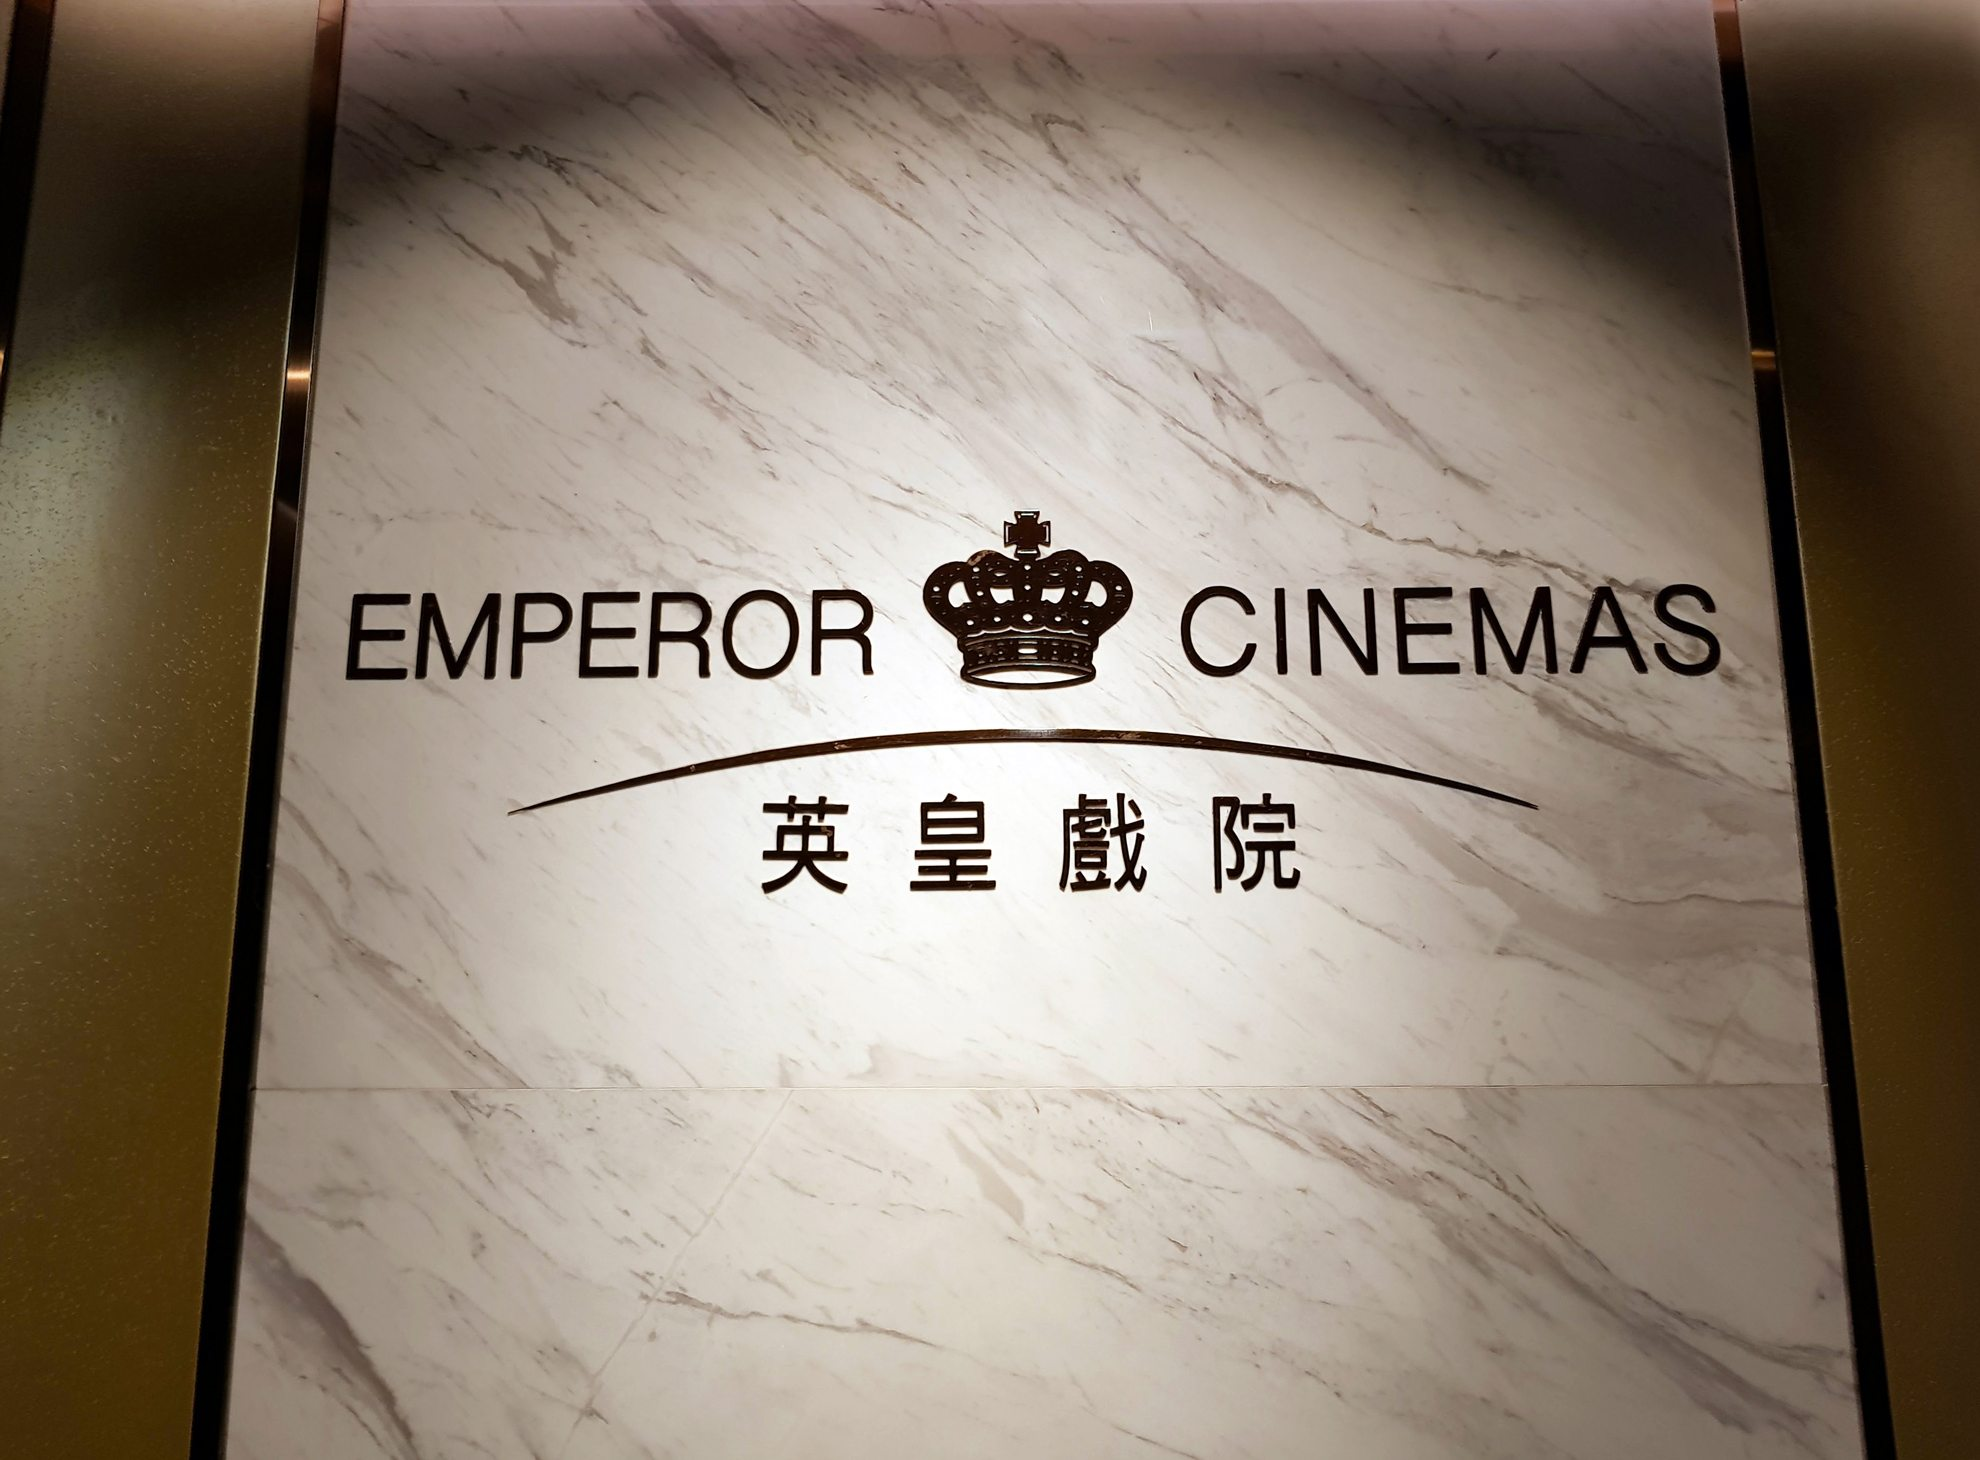 Emperor Cinemas in Hong Kong